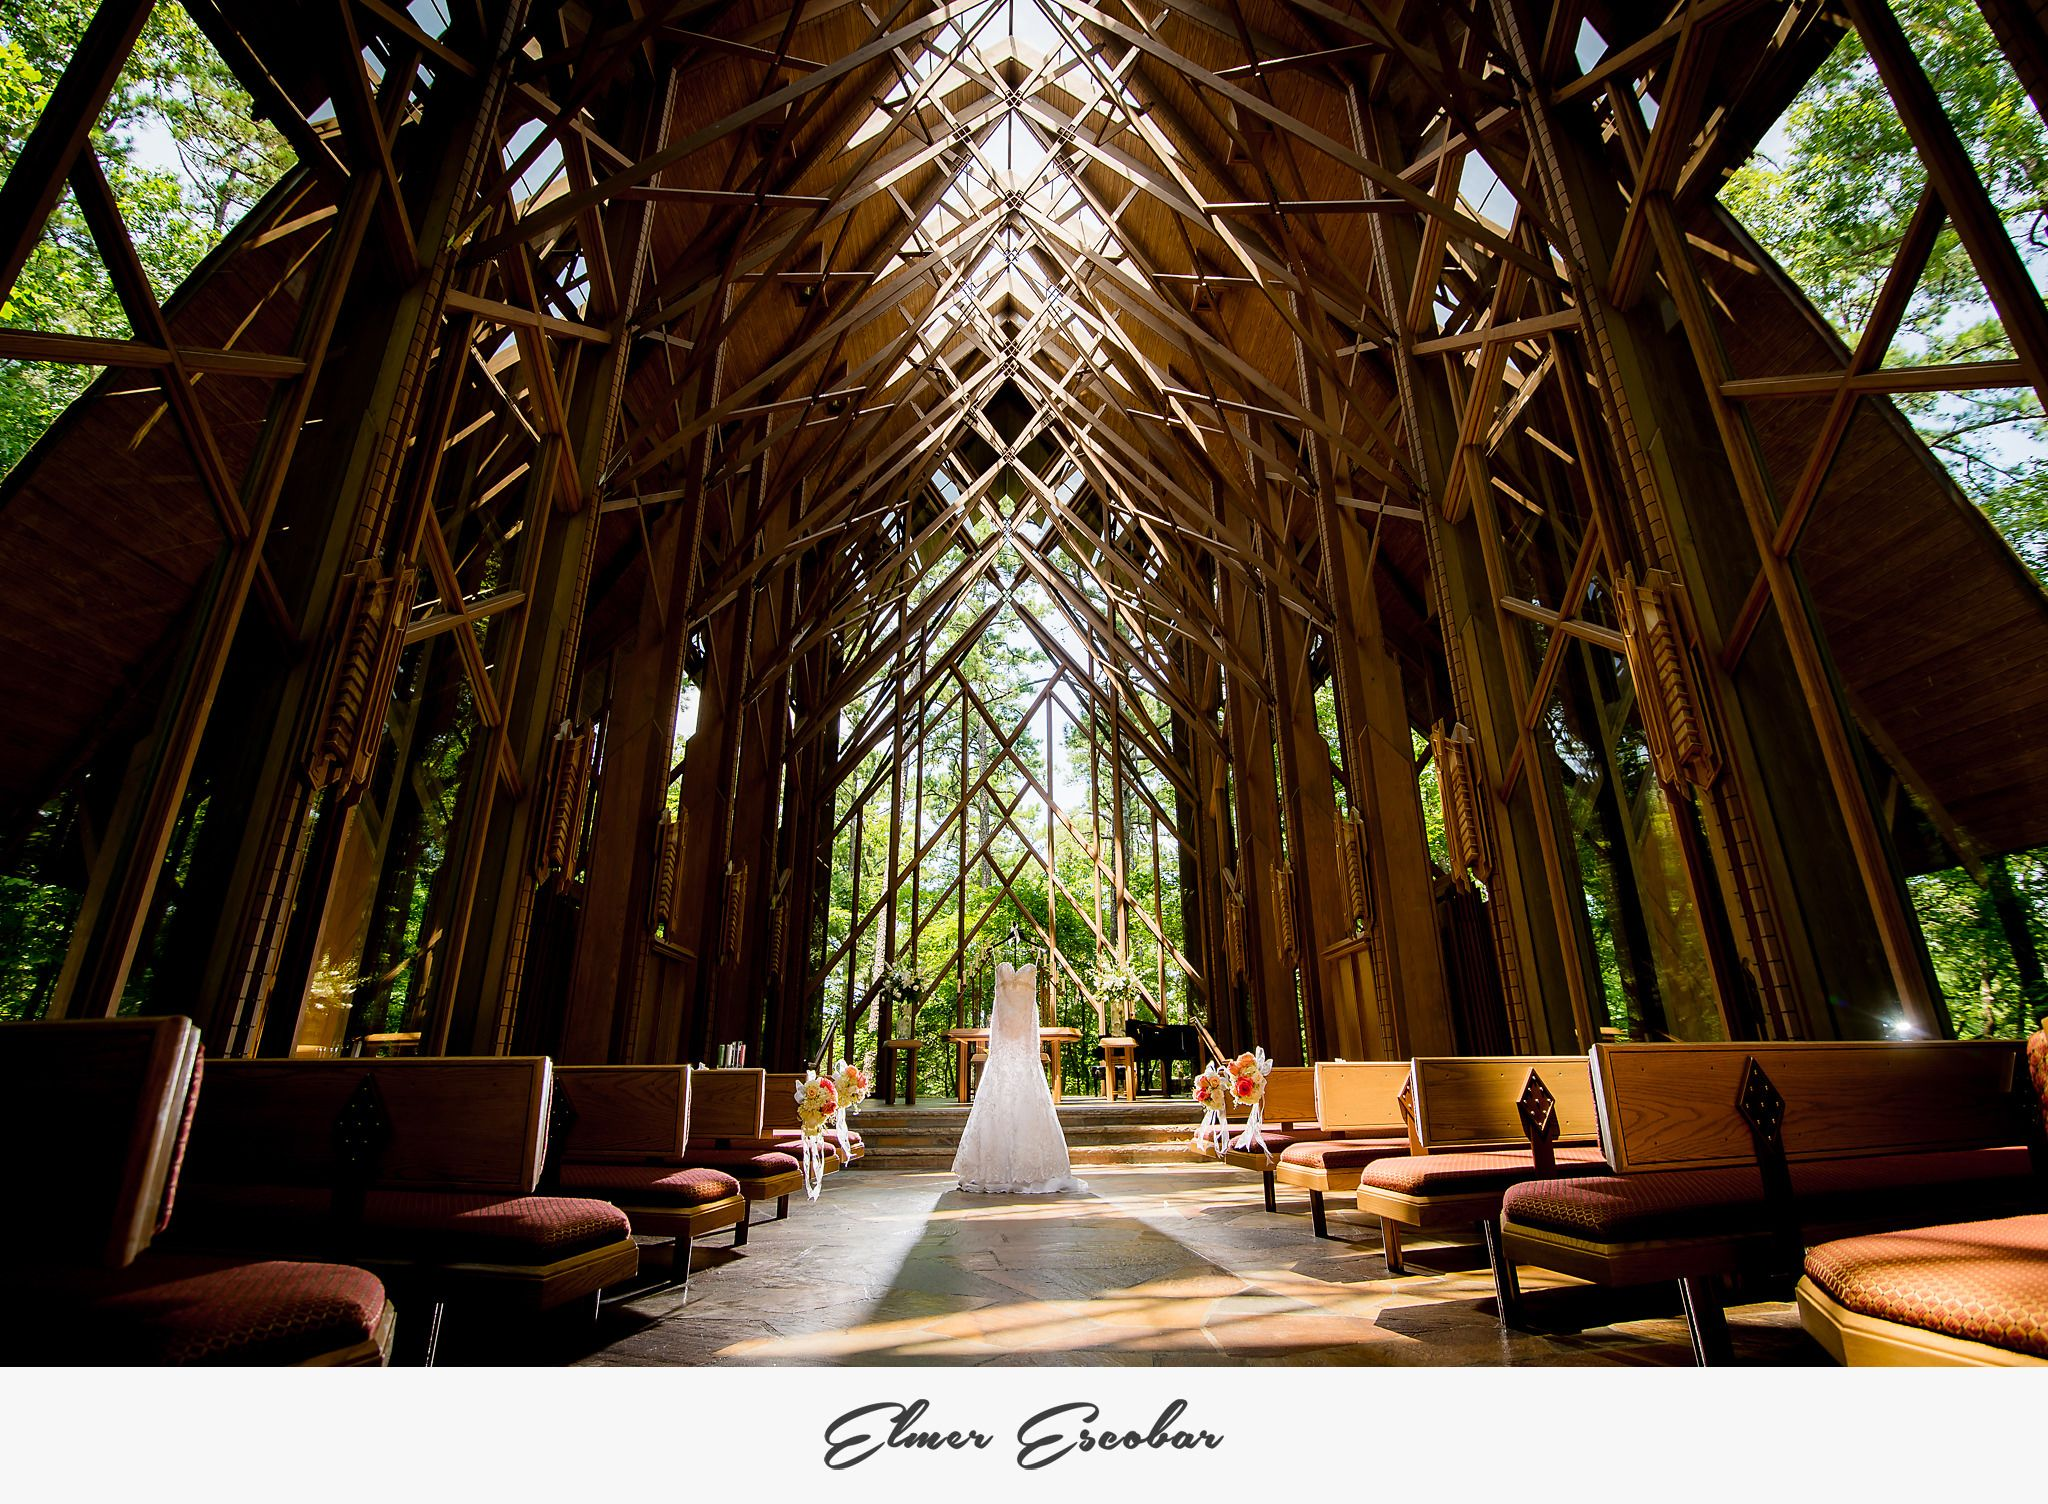 Garvan Woodland Gardens Wedding Weddingphotos